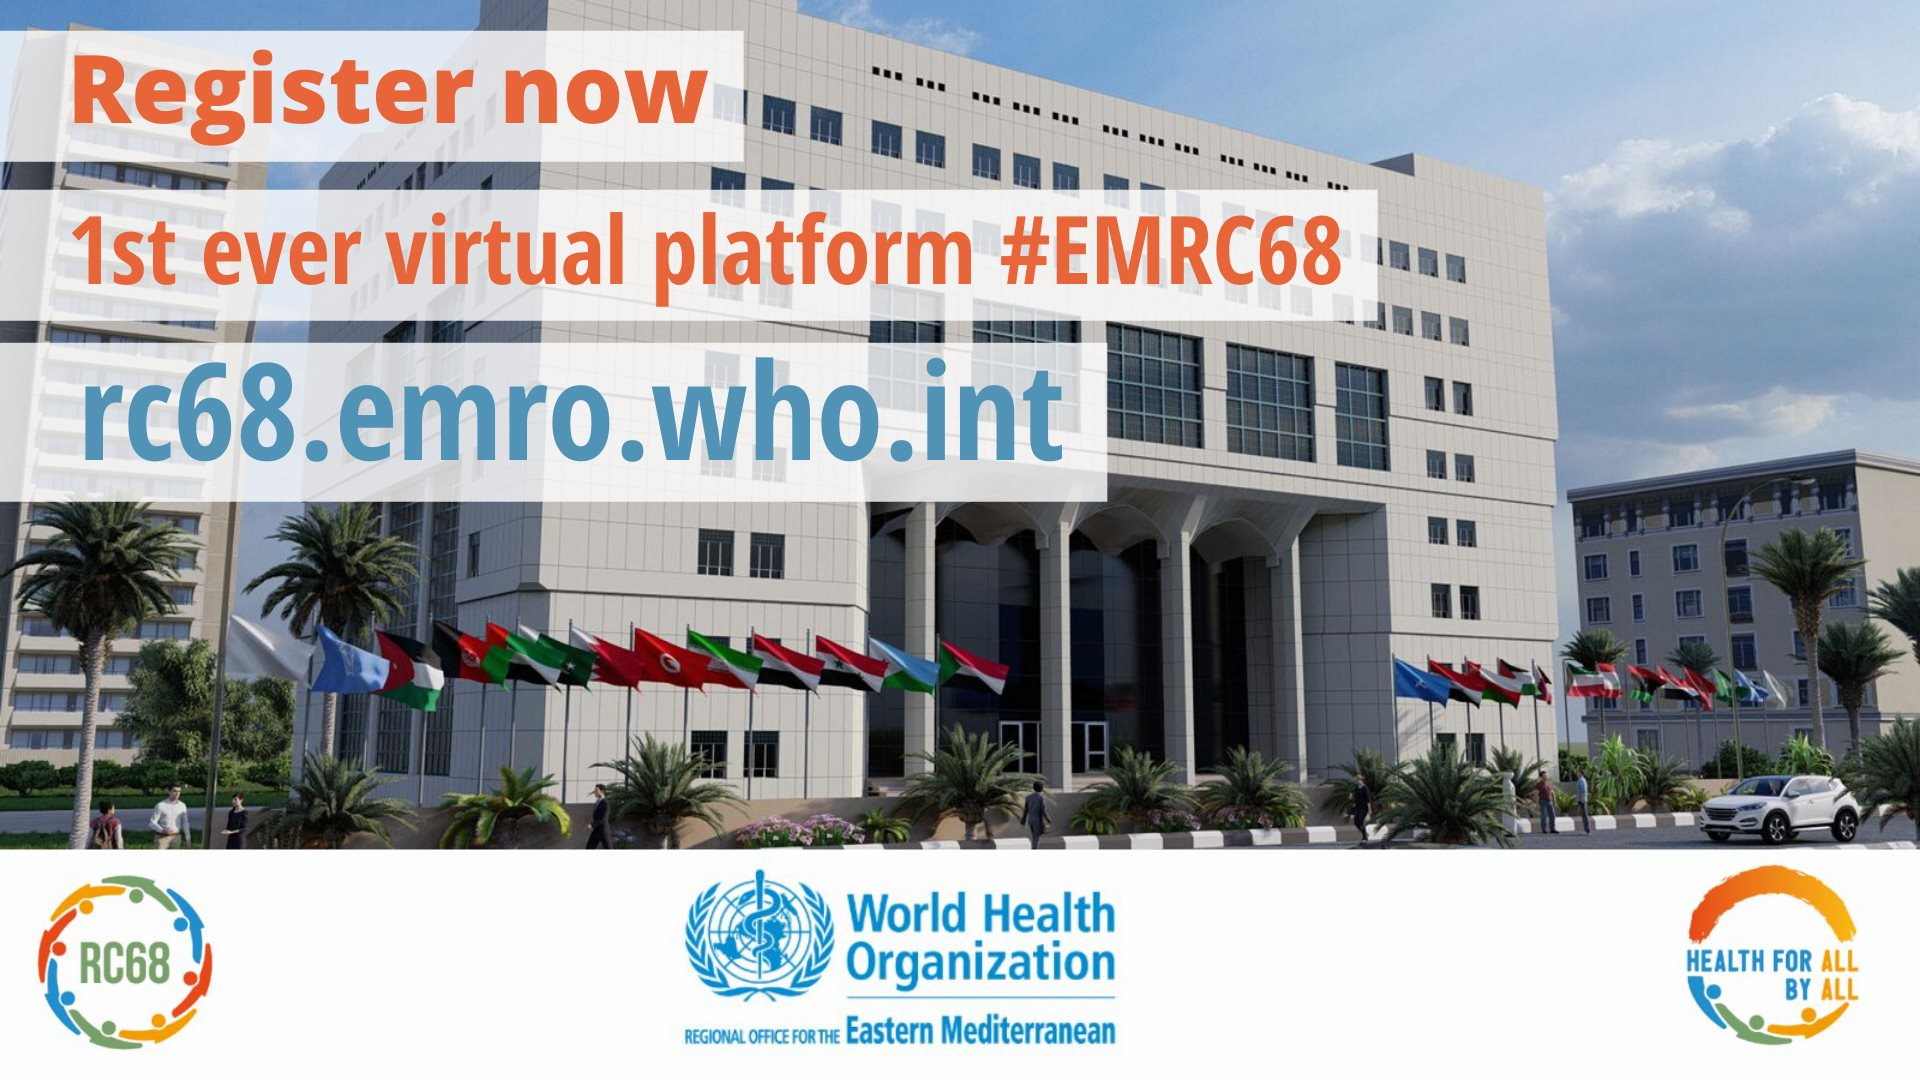 """Image of WHO regional office with the text """"Register now, 1st ever virtual platform #EMRC68, rc68.emro.who.int"""" with the logos of the World Health Organization below."""